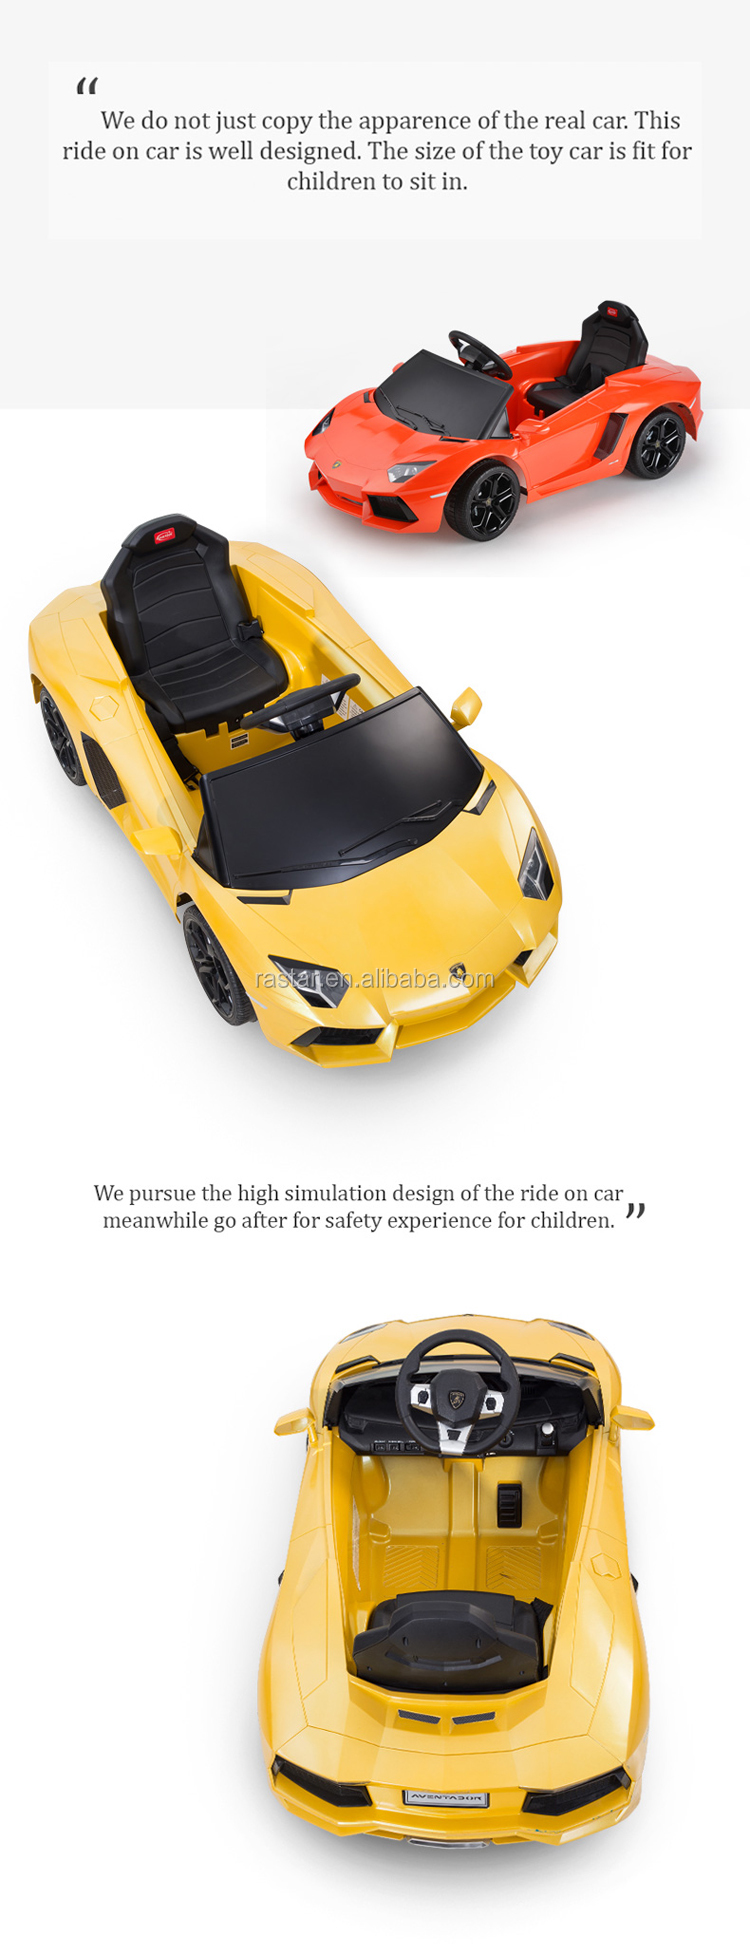 Rastar Lamborghini Licensed kids favorite electric ride on toy car